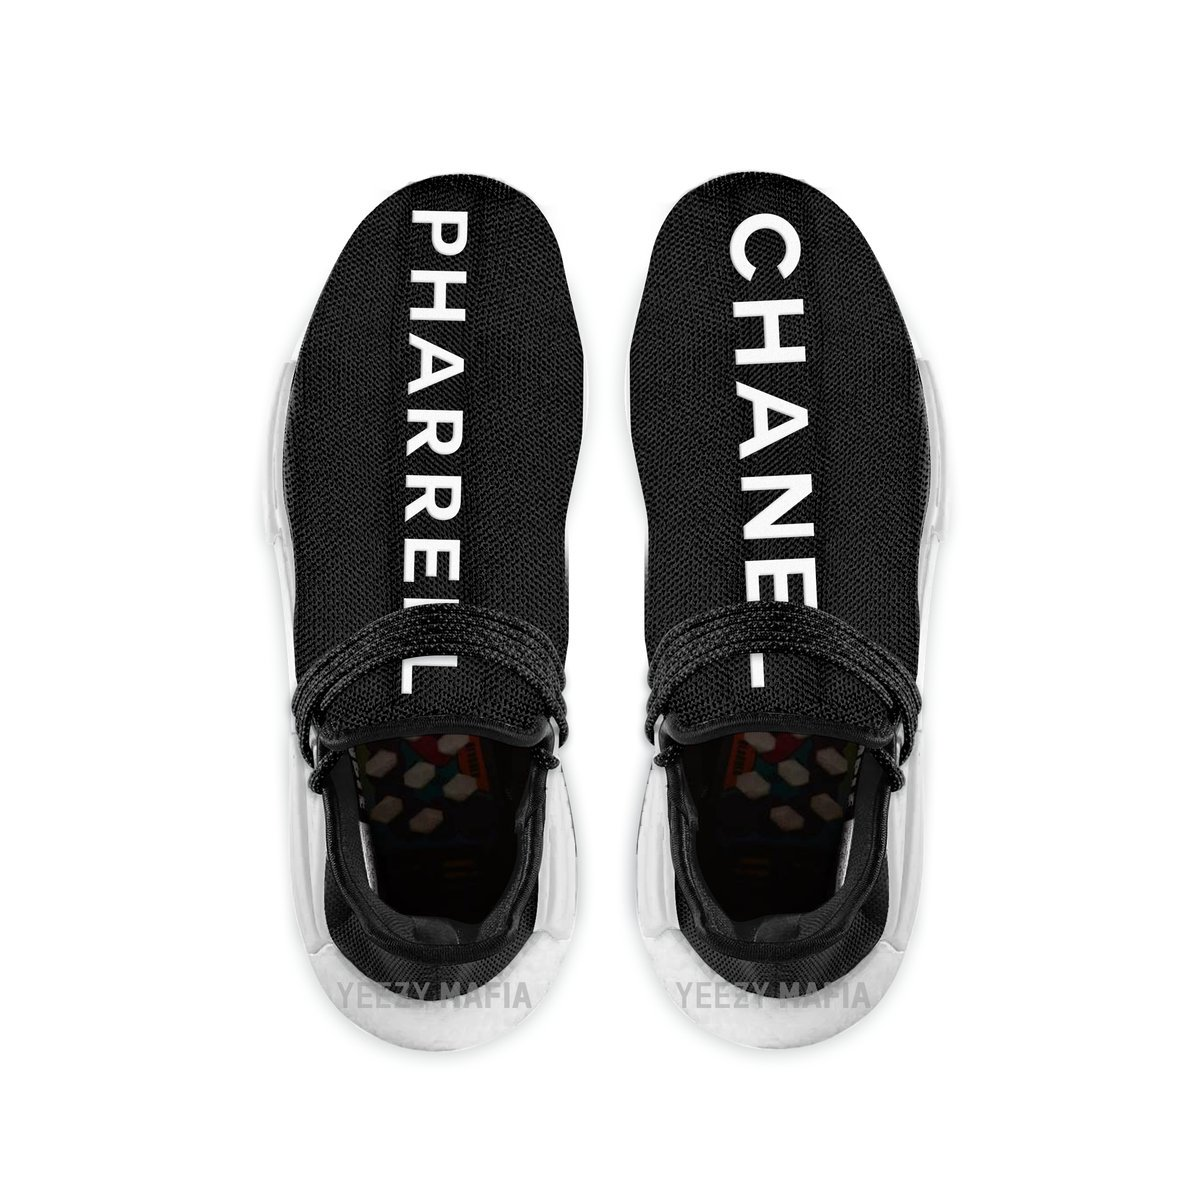 low priced 40a8c 451ec Is a @pharrell x @chanel x @adidas nmd human race collab ...